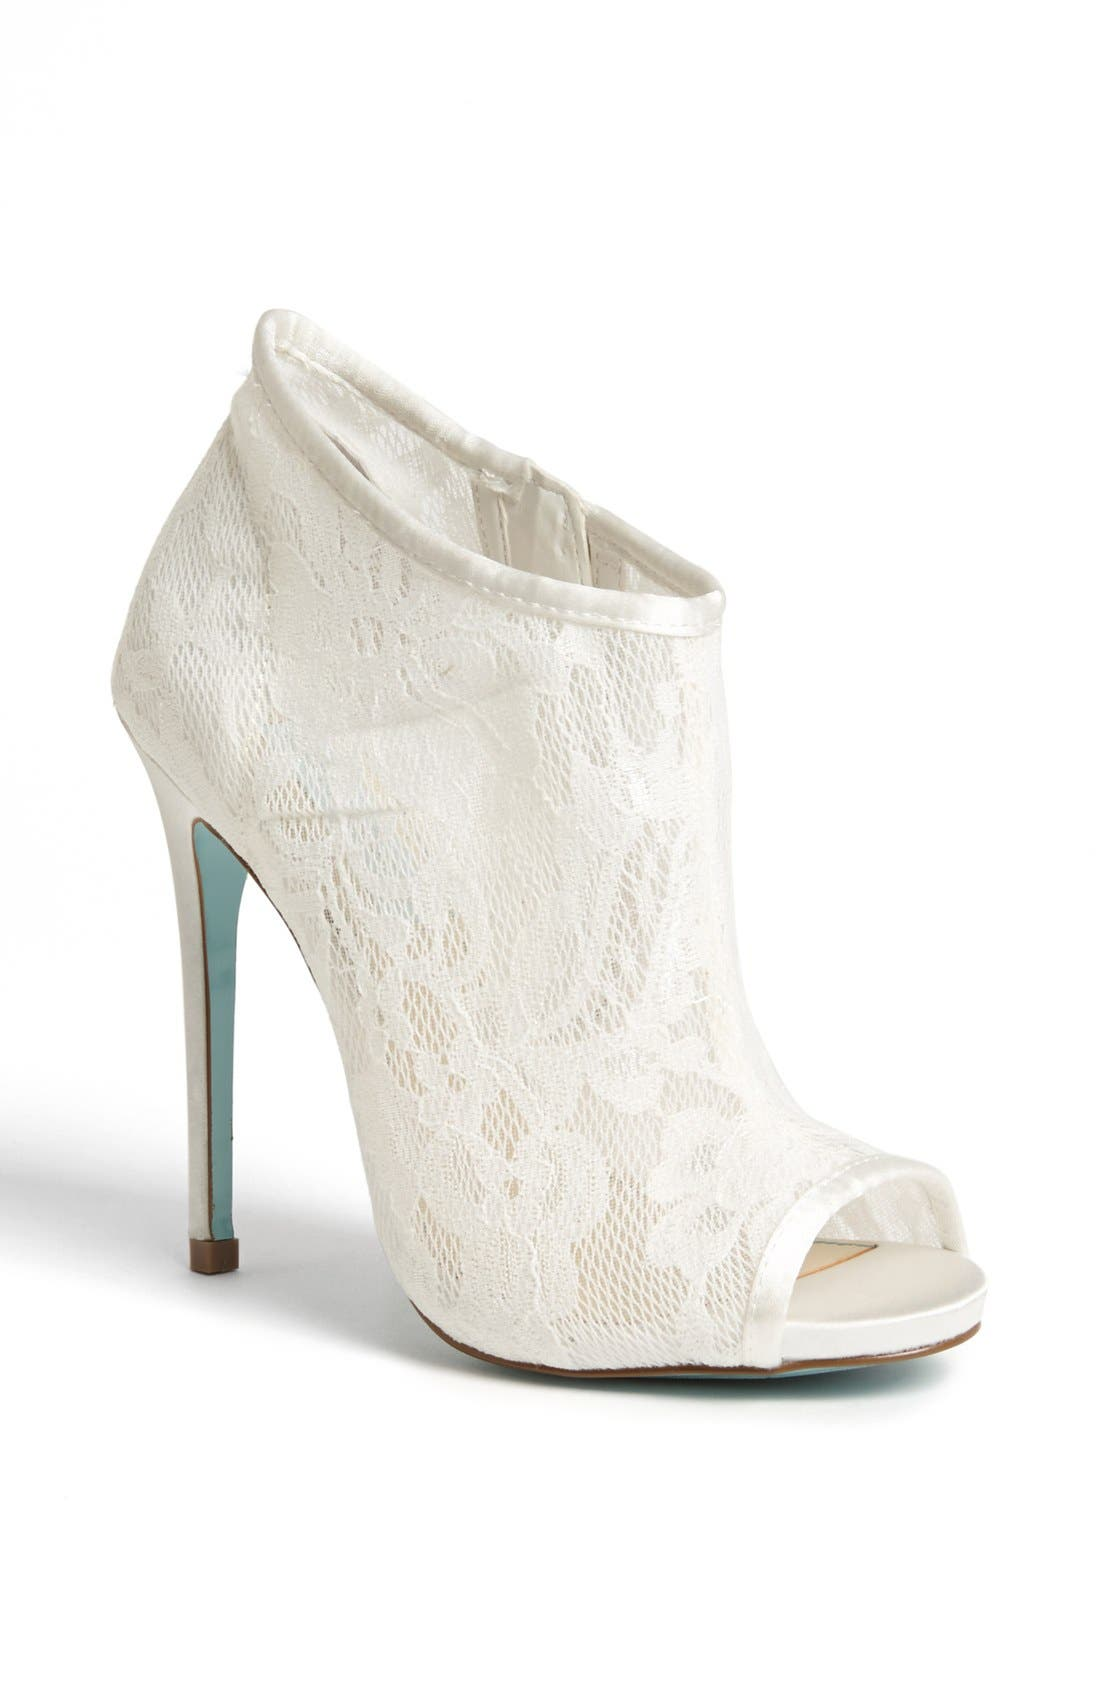 Main Image - Blue by Betsey Johnson 'RSVP' Bootie